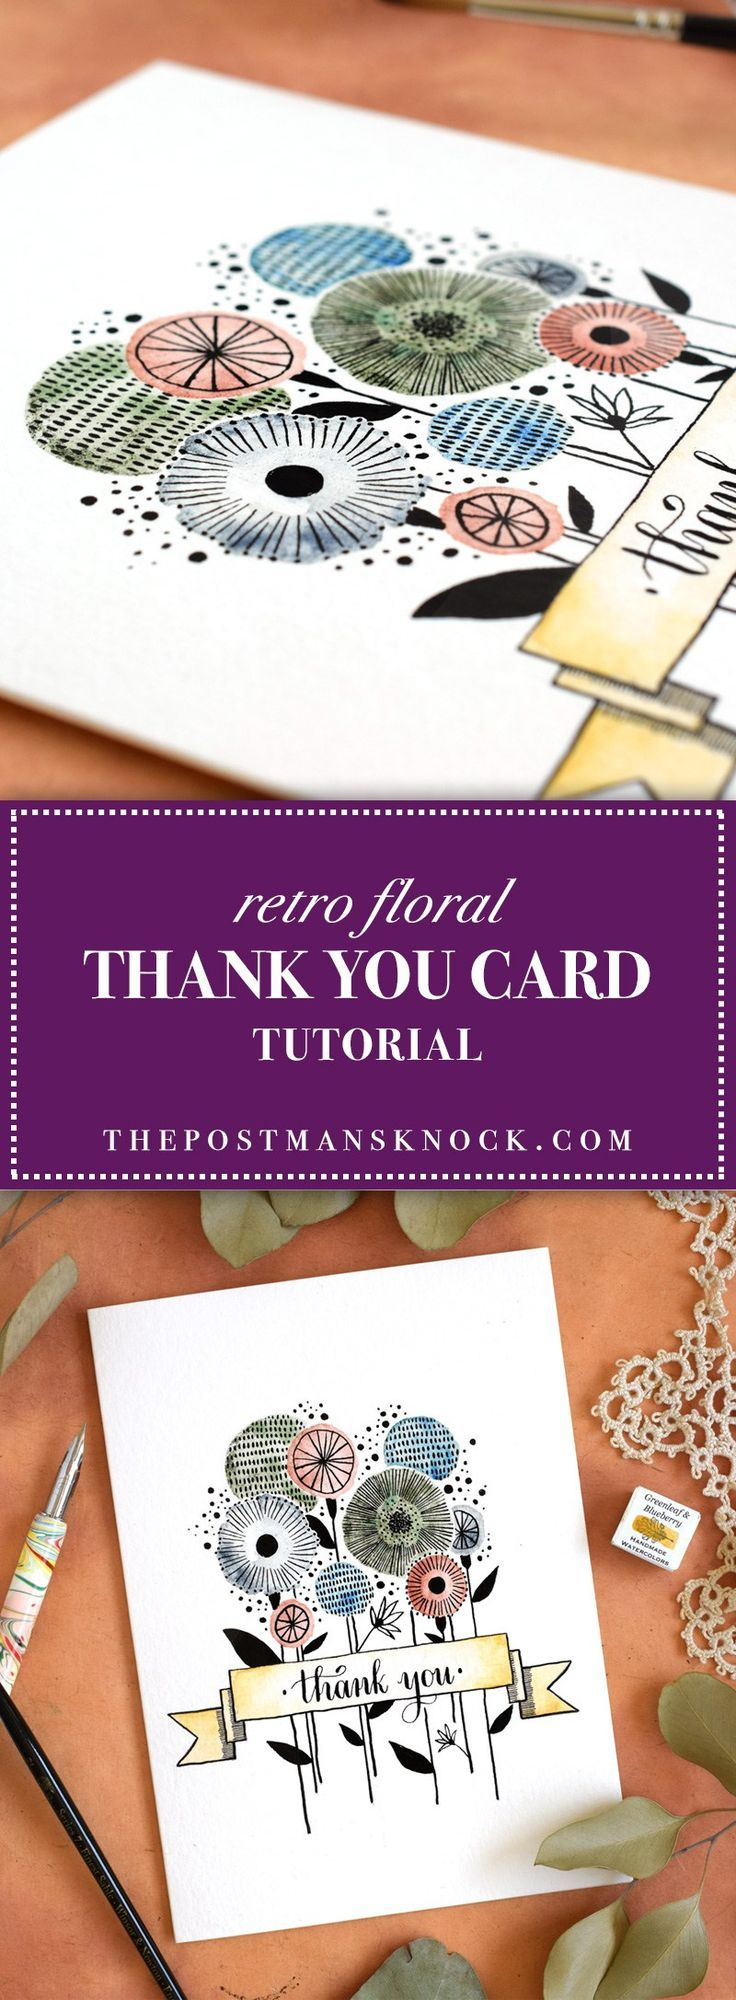 Retro Floral Thank You Card Tutorial | The Postman's Knock -- One of my favorites on the TPK blog! Great for people who want to practice using watercolors in a fun, simple way.